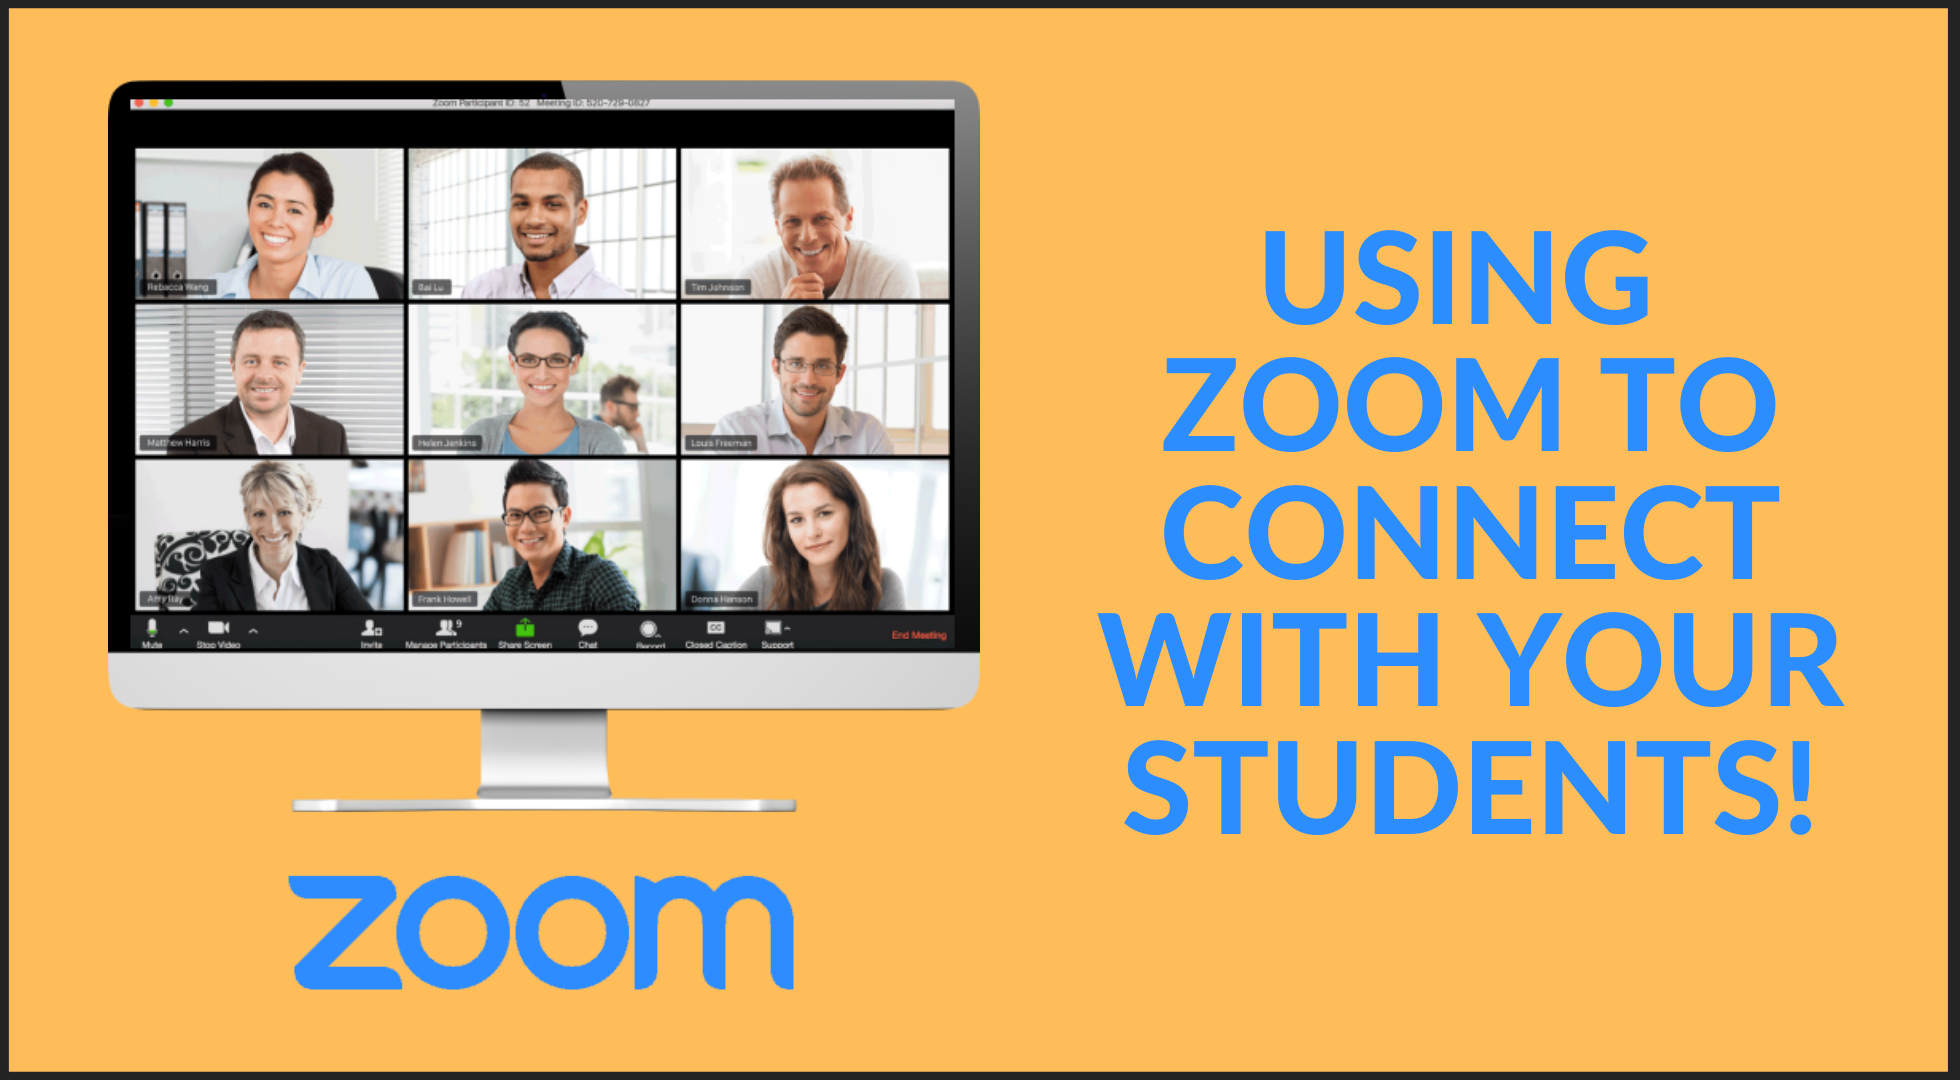 Professional Development – Using Zoom to Connect with Your Students